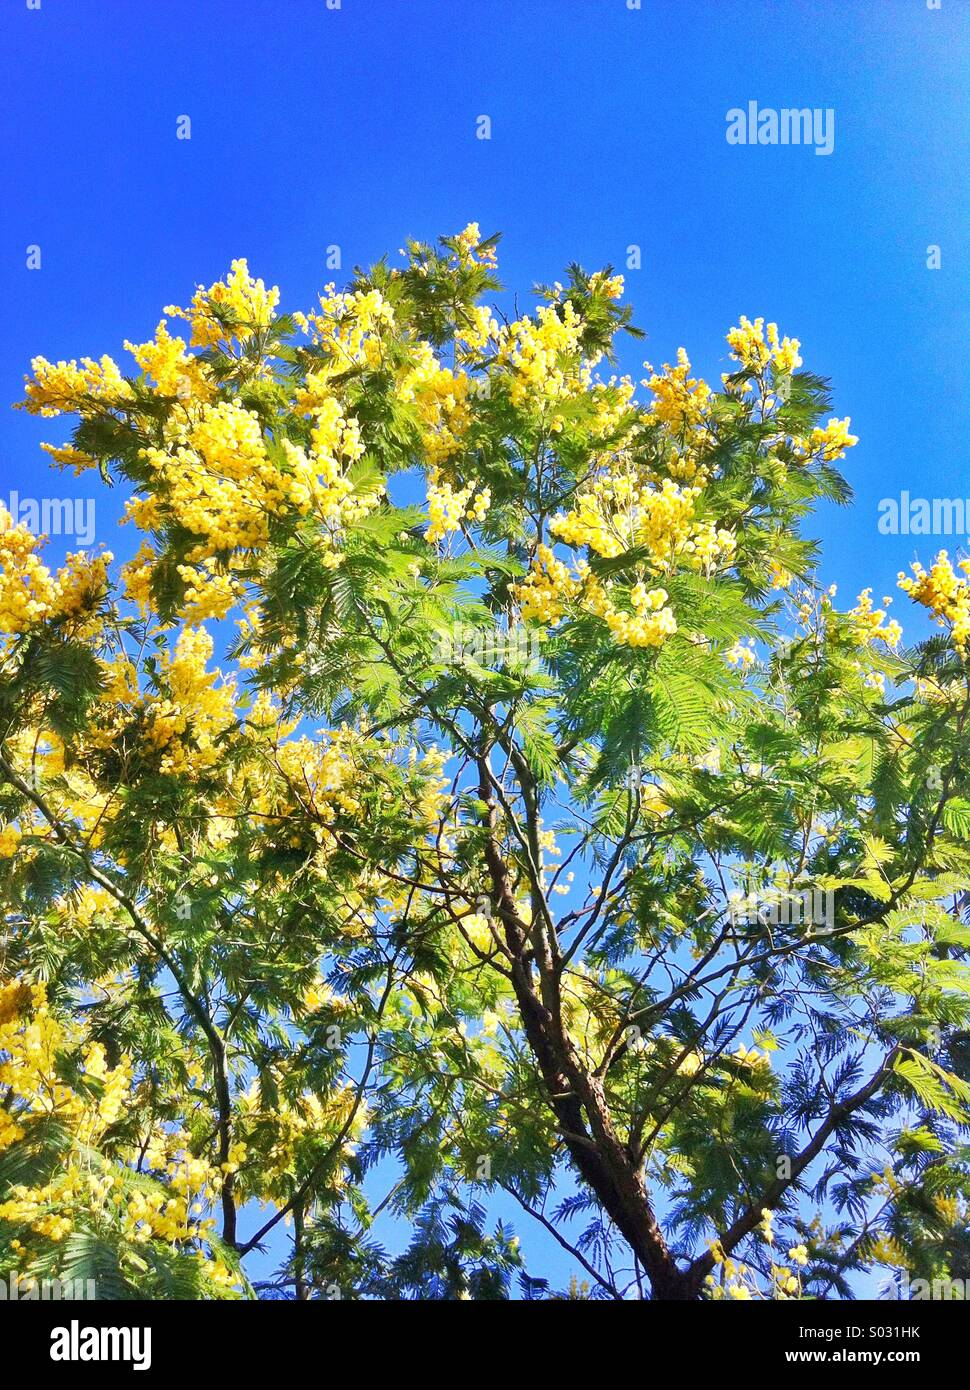 Yellow mimosa flowers with green leaves tree - Stock Image